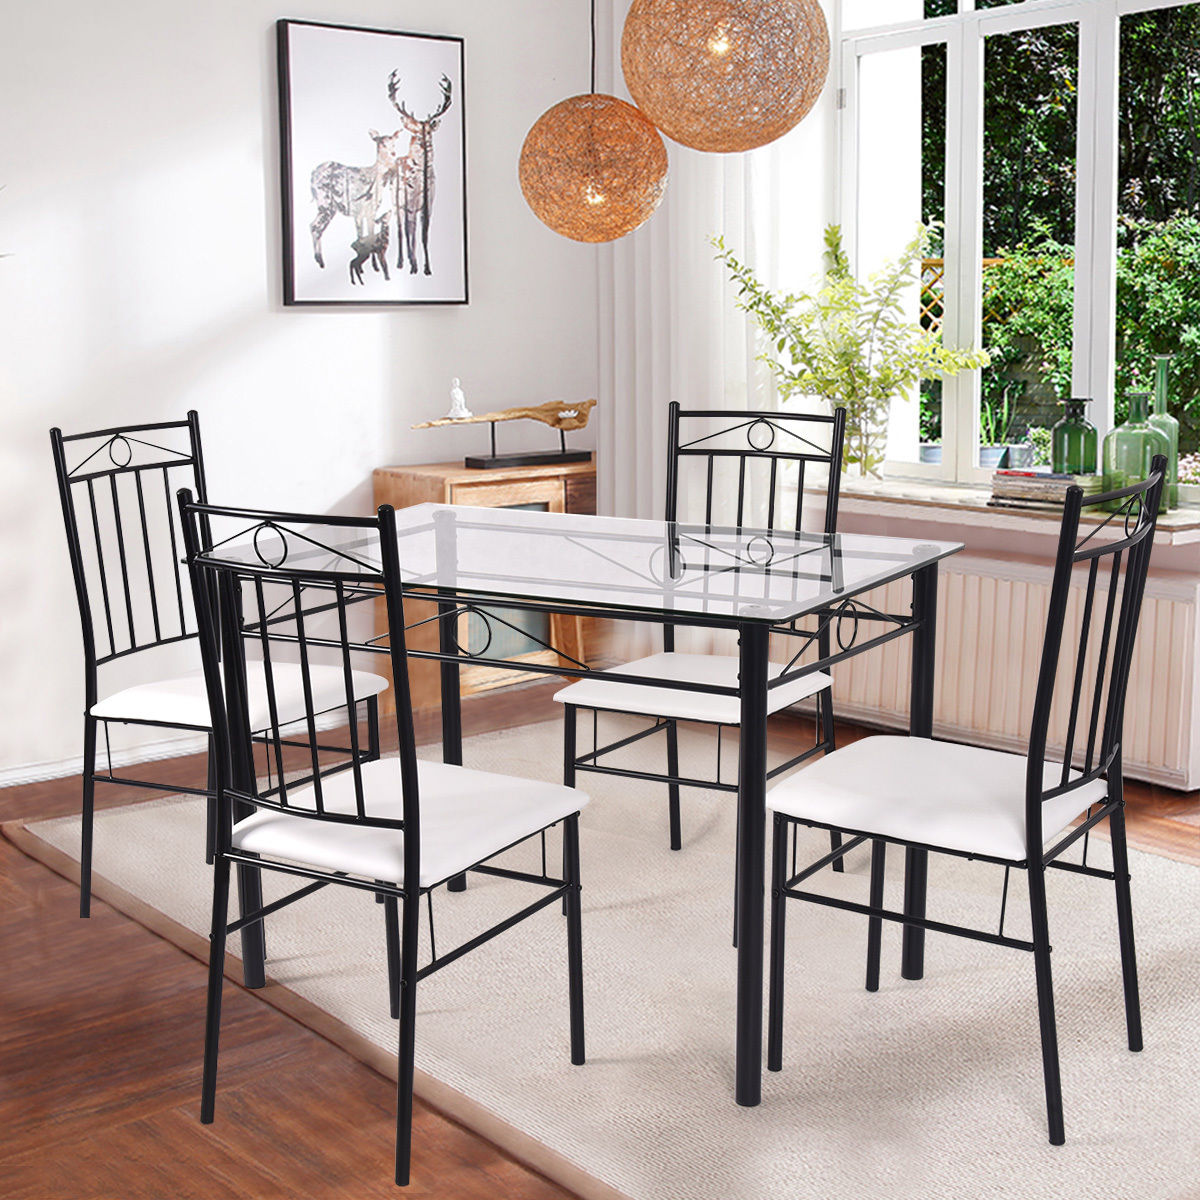 Costway 5 Piece Dining Set Glass Metal Table and 4 Chairs Kitchen Breakfast  Furniture - Traveller Location